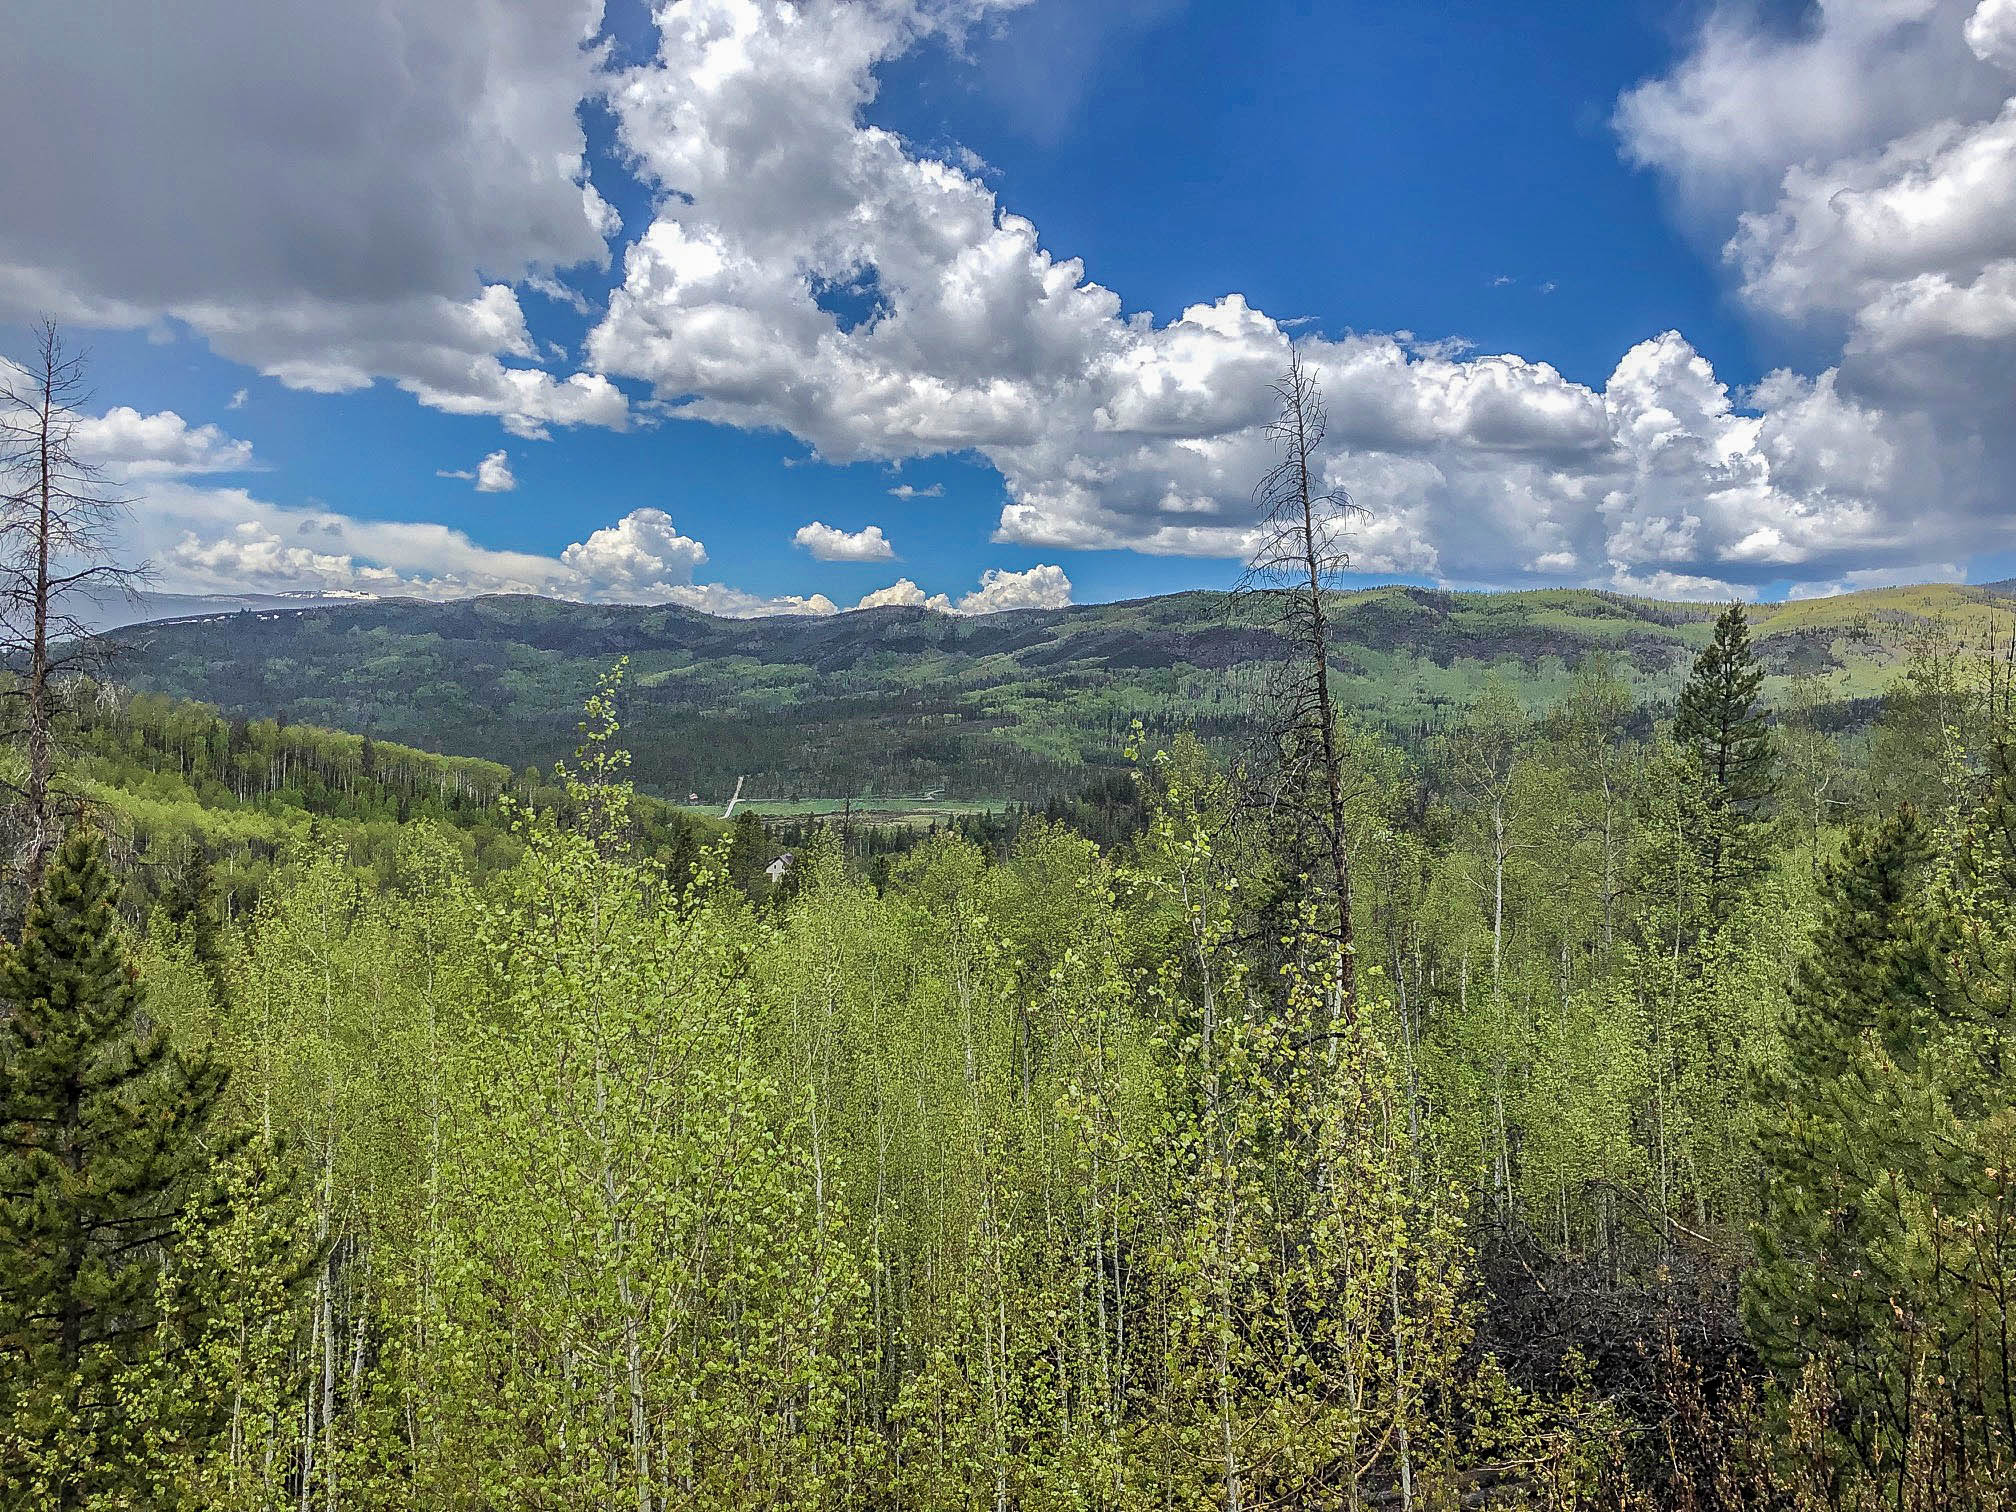 83 & 125 County Road 414 - GRAND LAKE - Lovely mix of aspen and pines on this nearly 3 acre parcel. Huge mountain views, year round access and very close to public lands. Amazing water sport recreation is just minutes away too on Lake Granby, Shadow Mountain and Grand Lake. Listed for $119,000